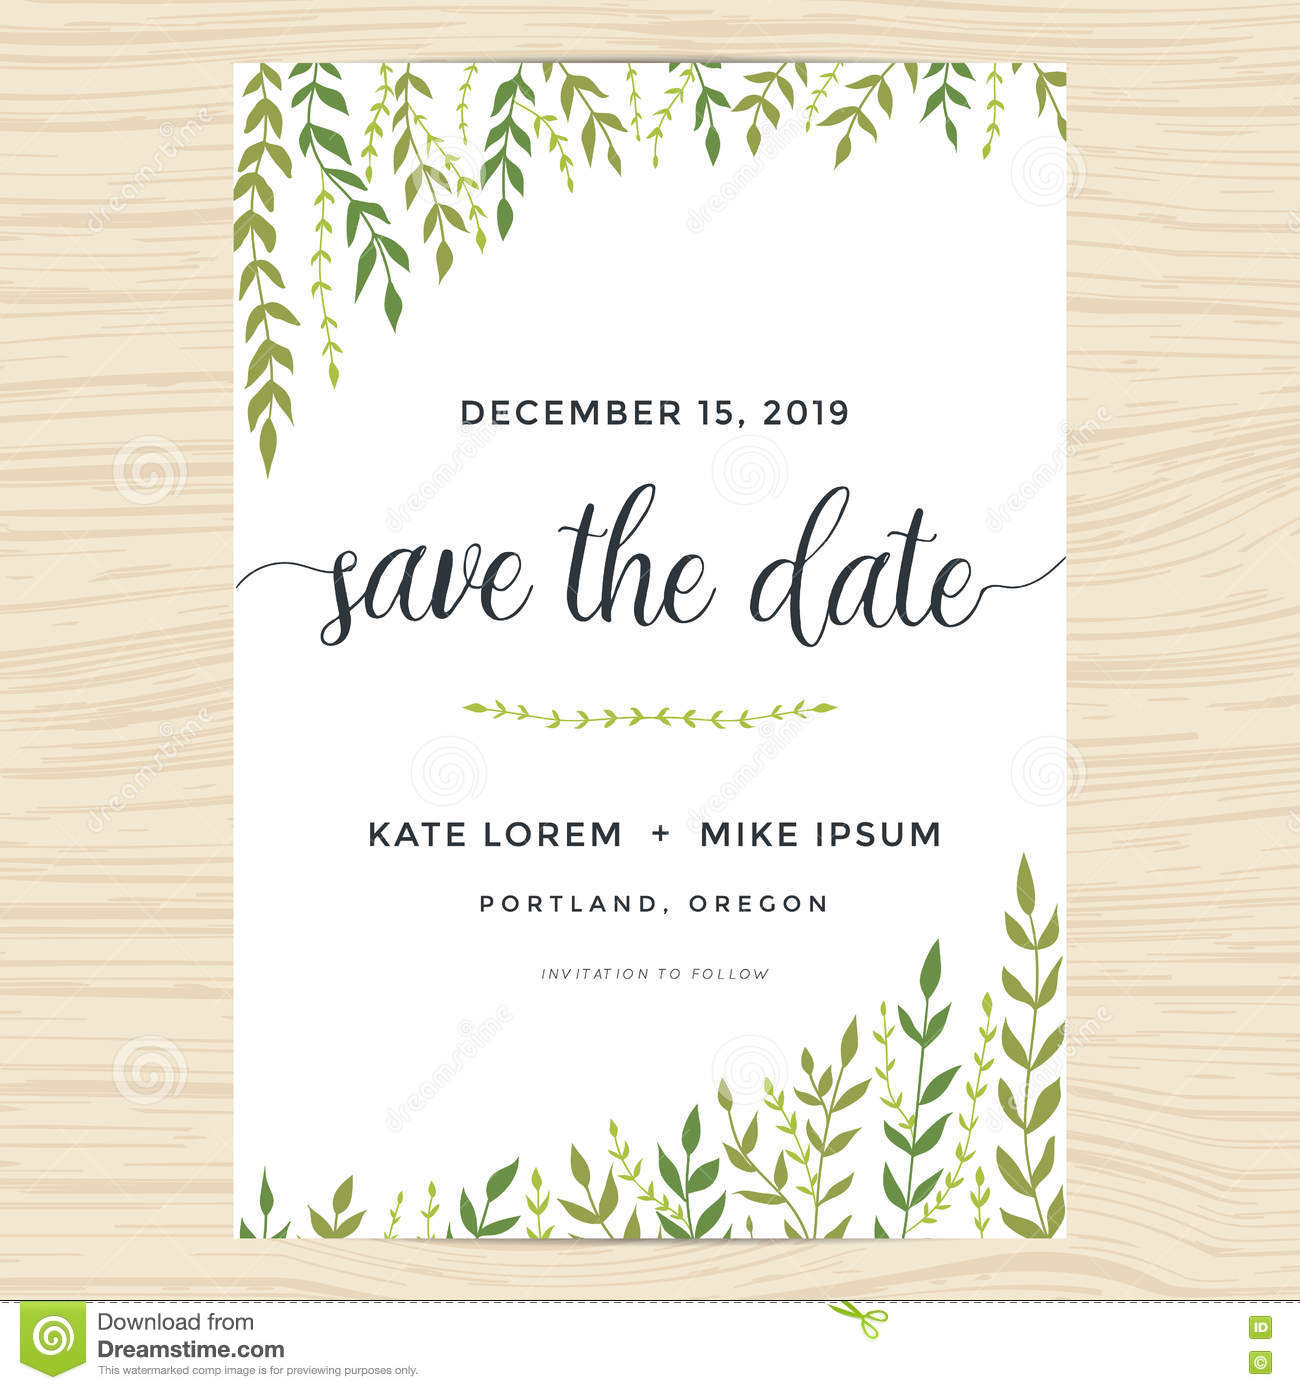 Elegant Garden Leafs Design For Save The Date Card, Wedding